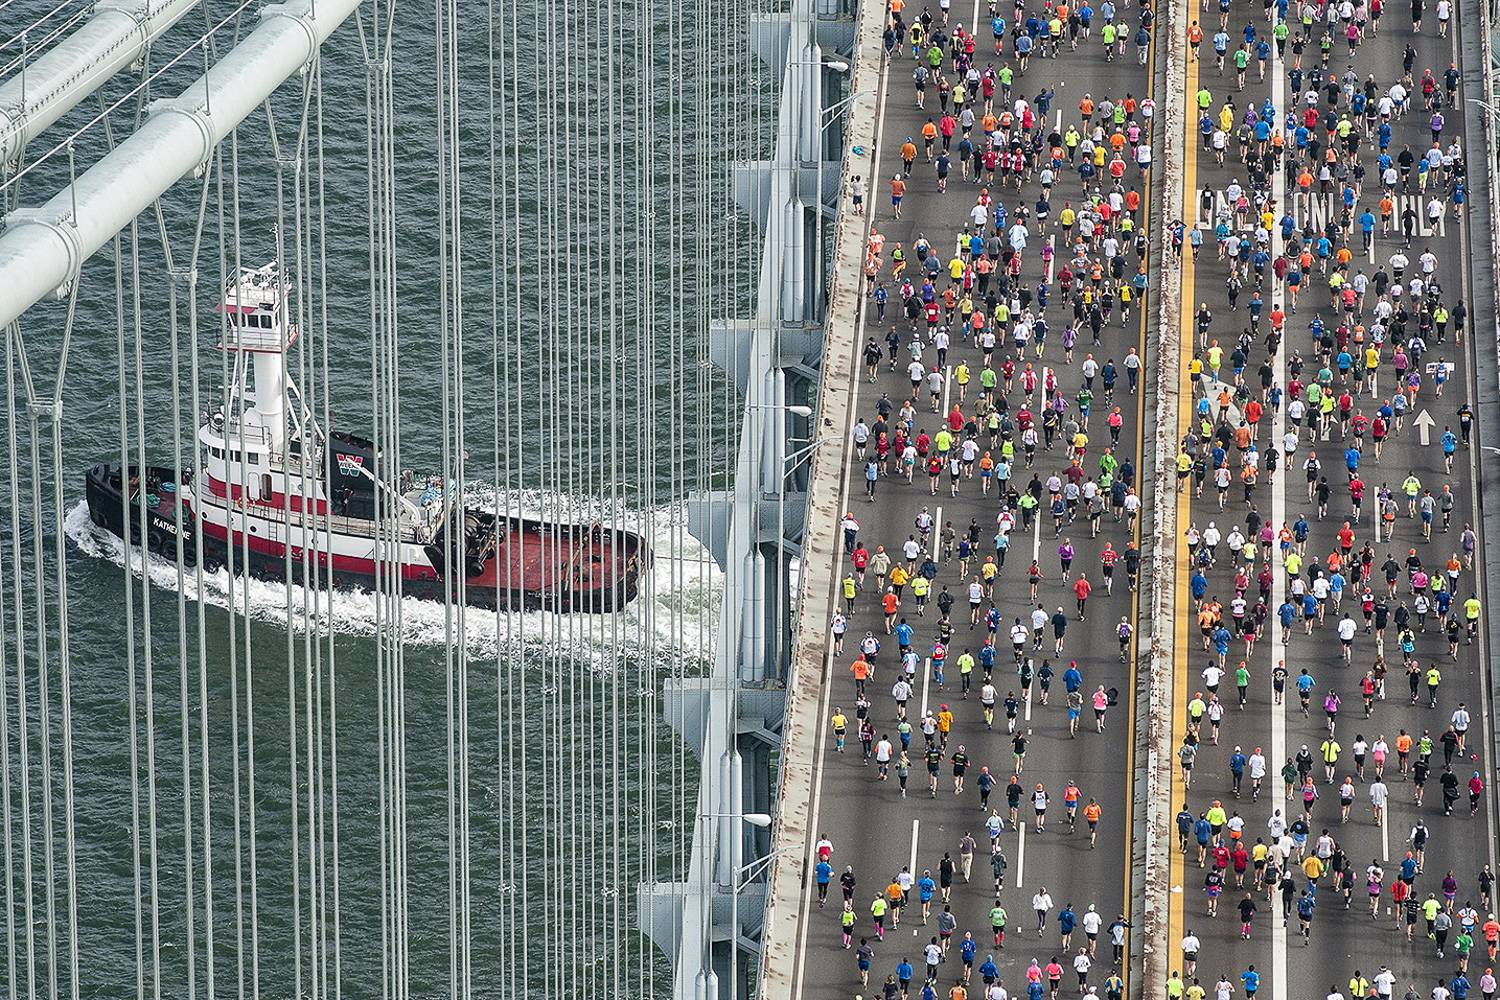 Image of marathoners running across the bridge in the TCS New York City Marathon with a ship passing under the bridge.